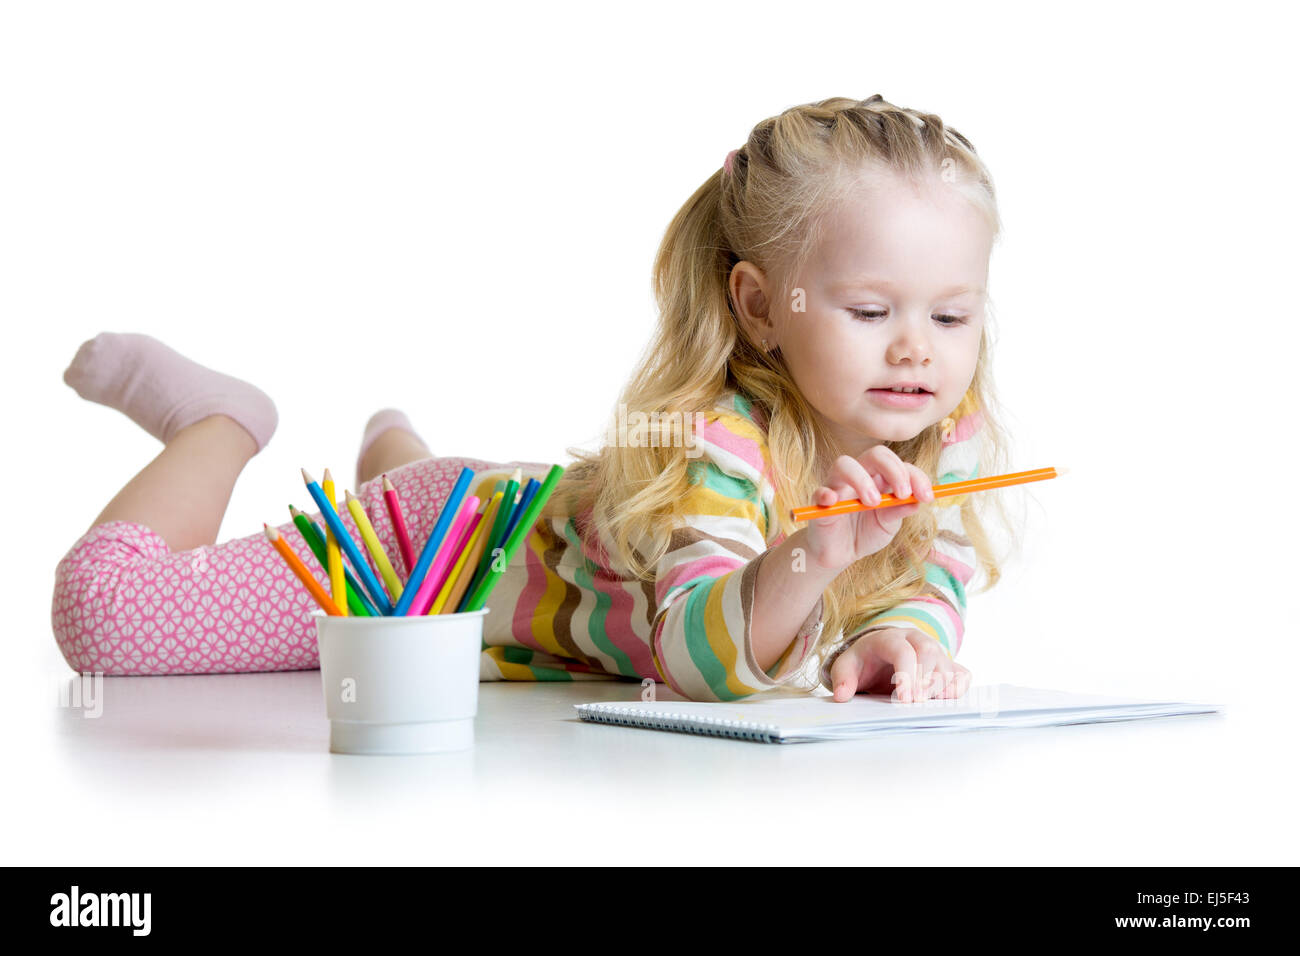 child girl drawing with pencils in nursery - Stock Image